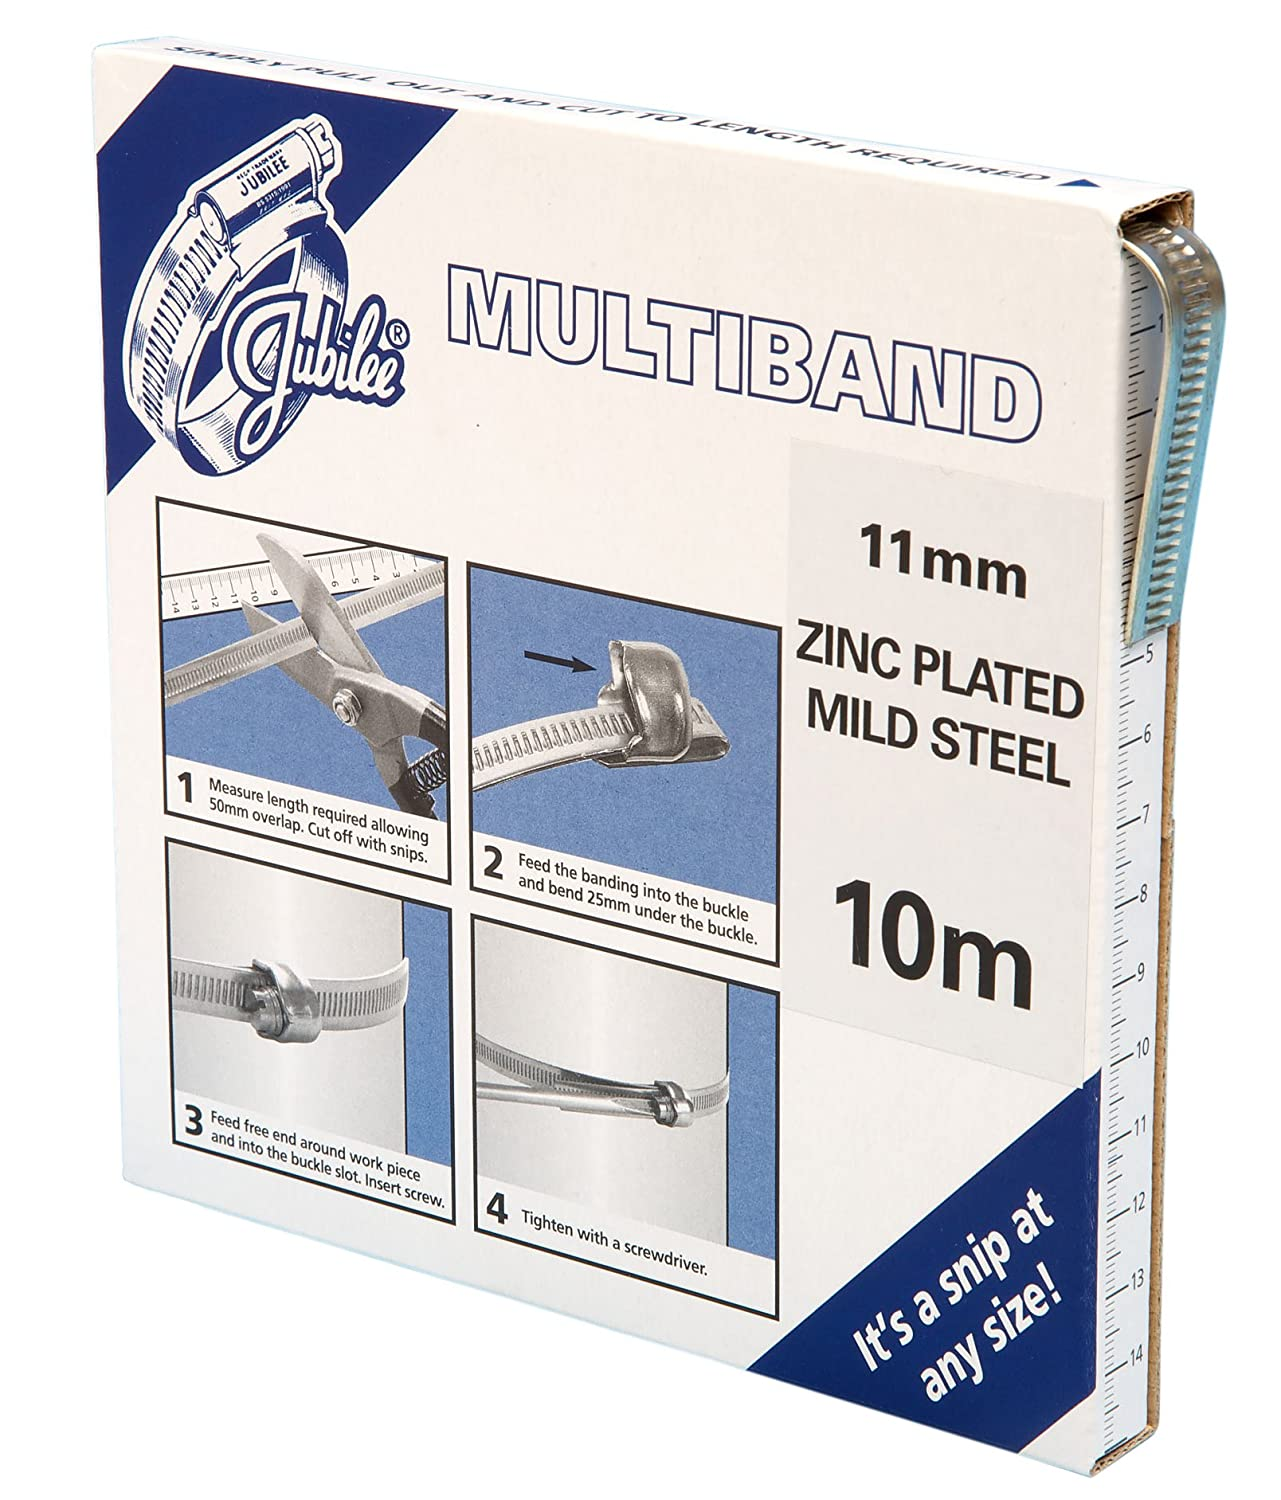 Jubilee MB1704 Housings and Screws for Multiband M/S, 11 mm, Set of 25 Jack Irwin